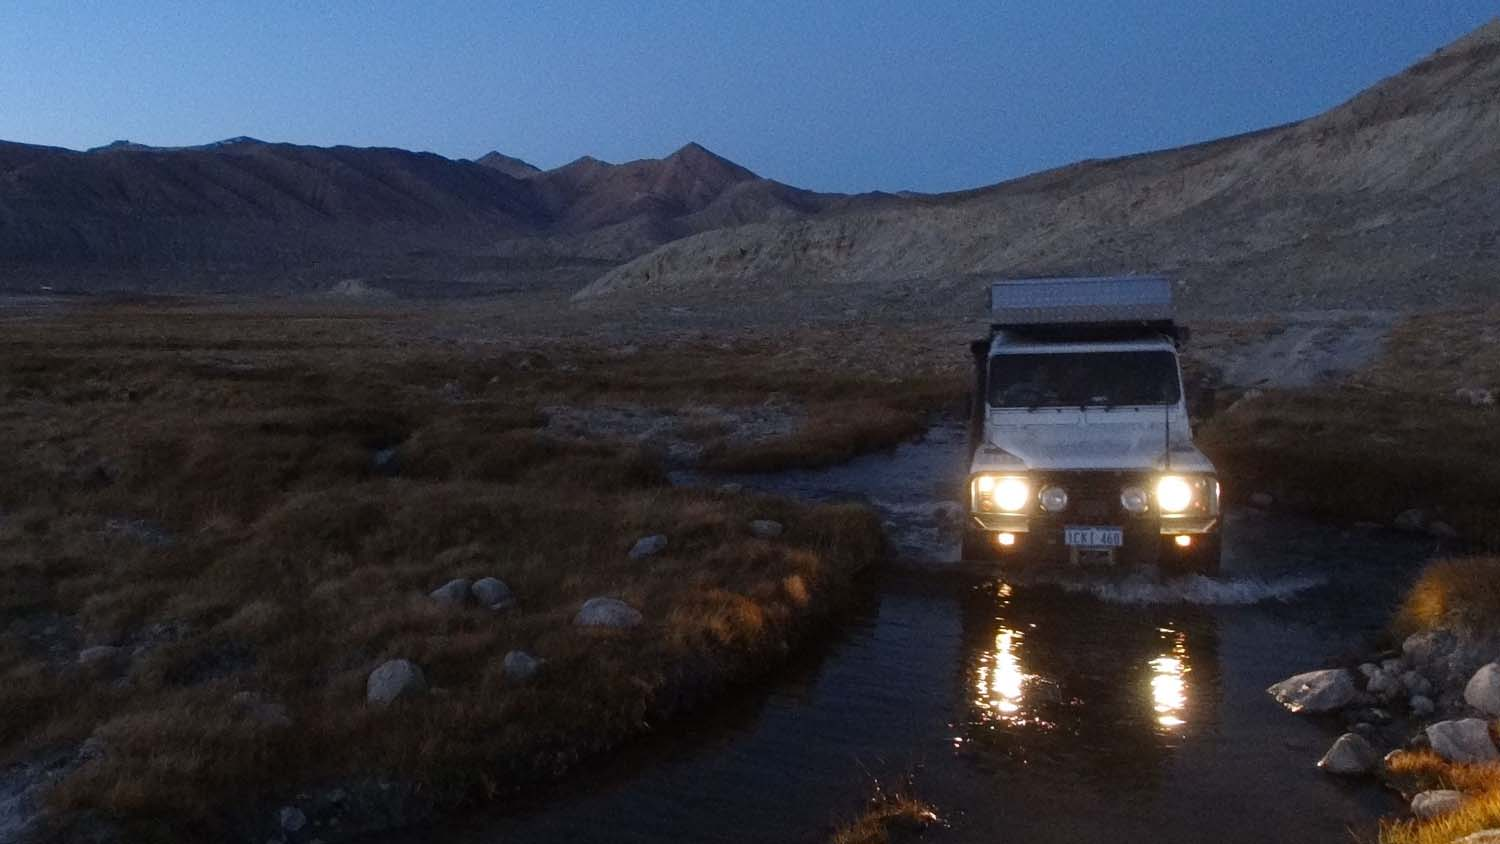 losing daylight rapidly in this remote valley with lots of dead-end tracks